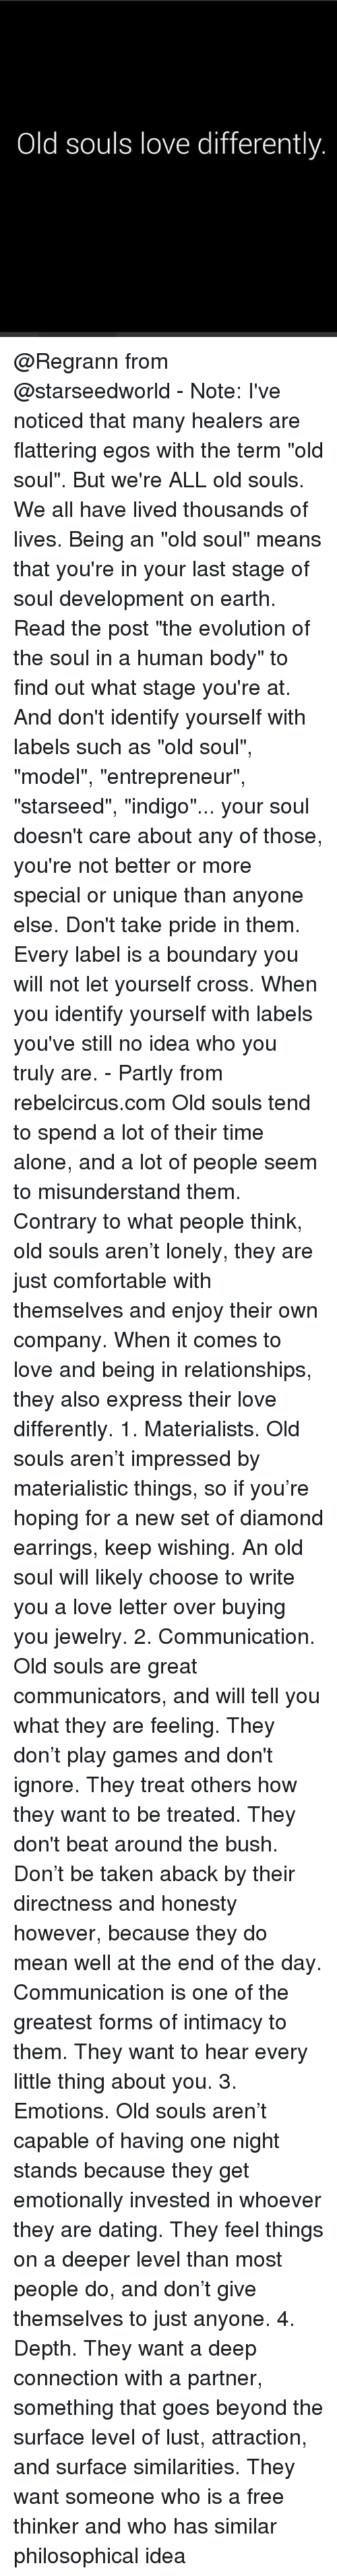 dating for old souls